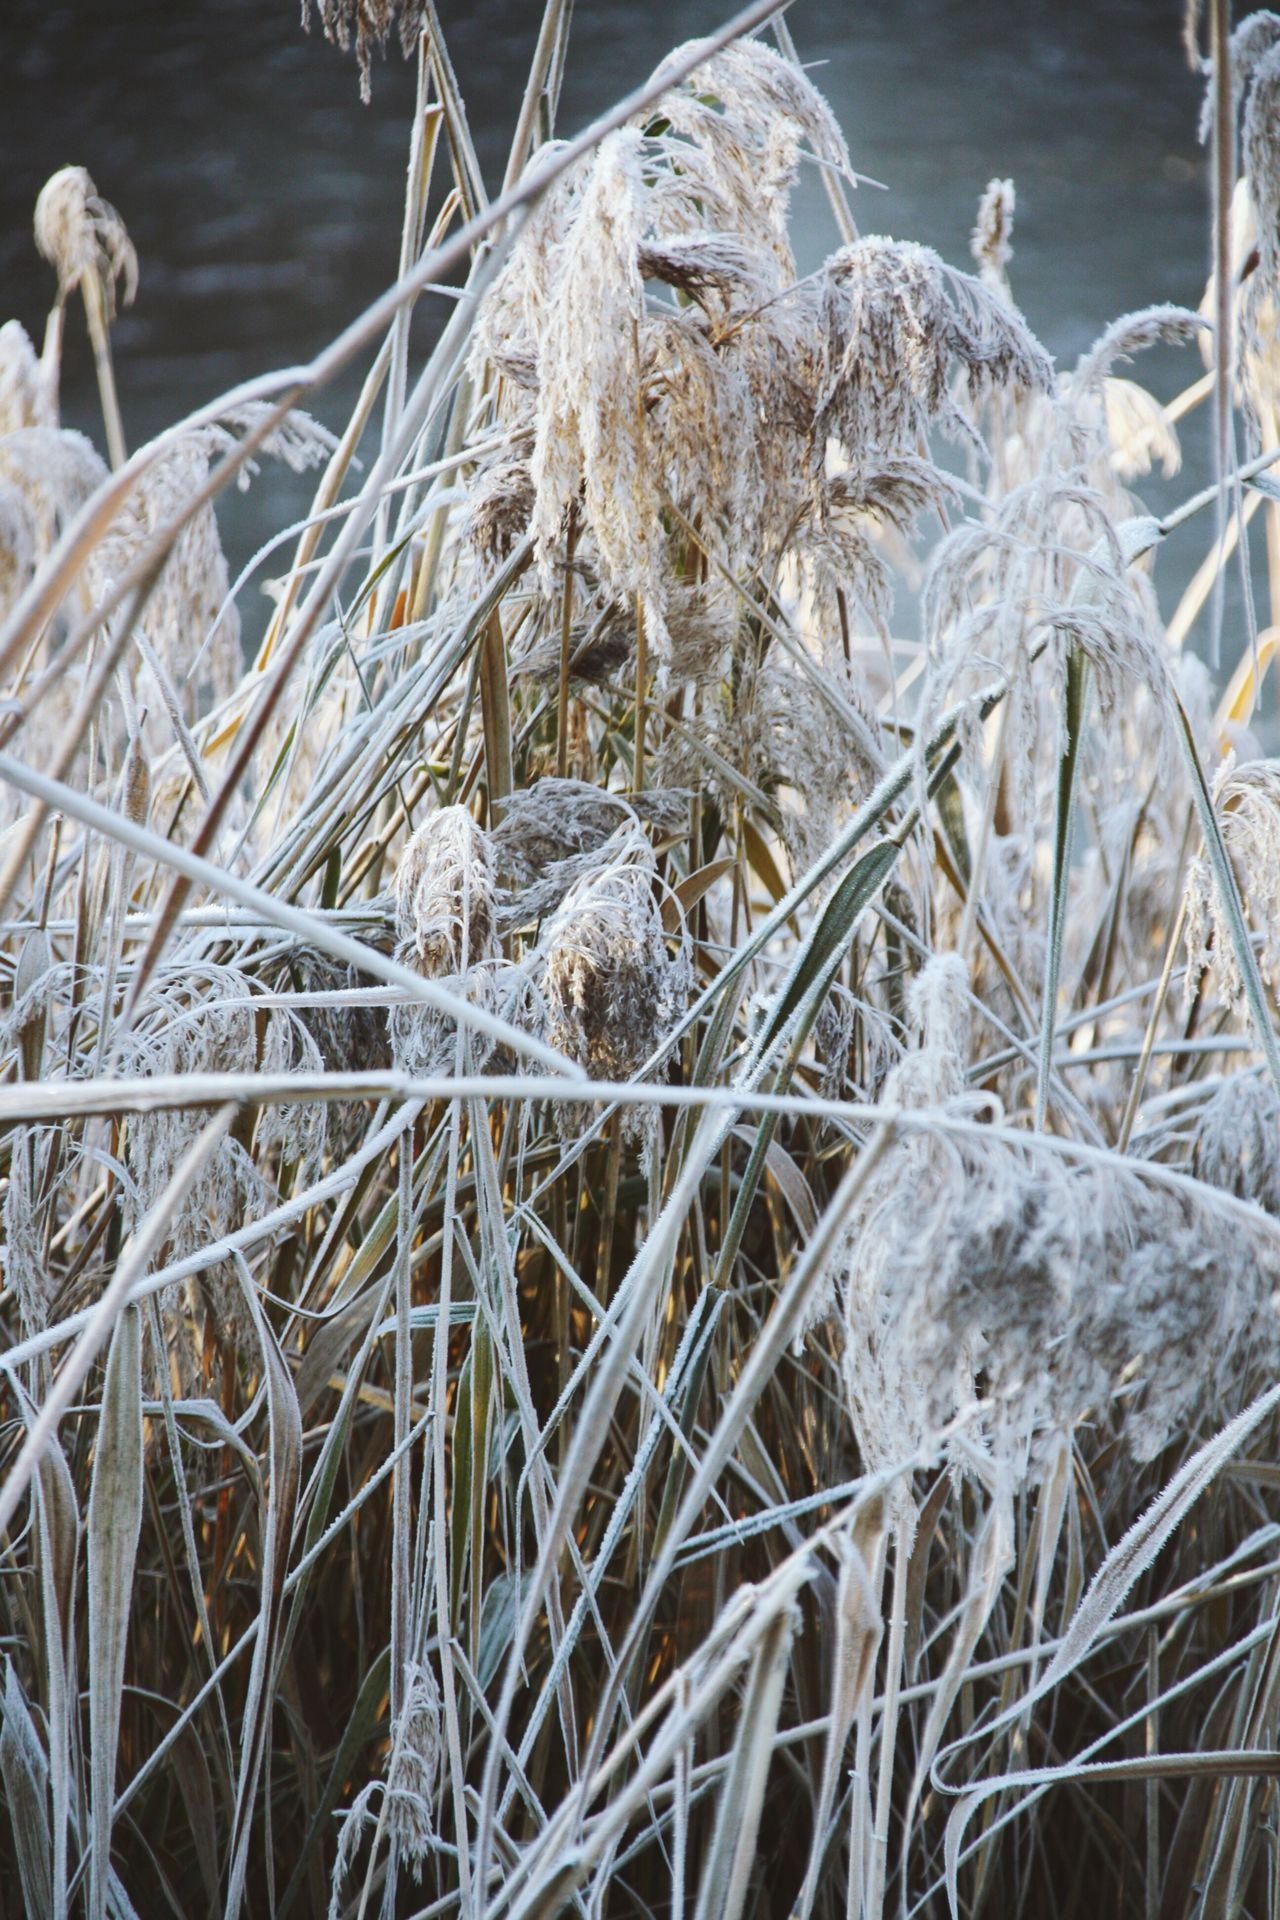 Winter Greens Nature No People Outdoors Grass Day Sunlight Winter Frozen Nature Ice Crystals Frozen Flowers Leaves Lake